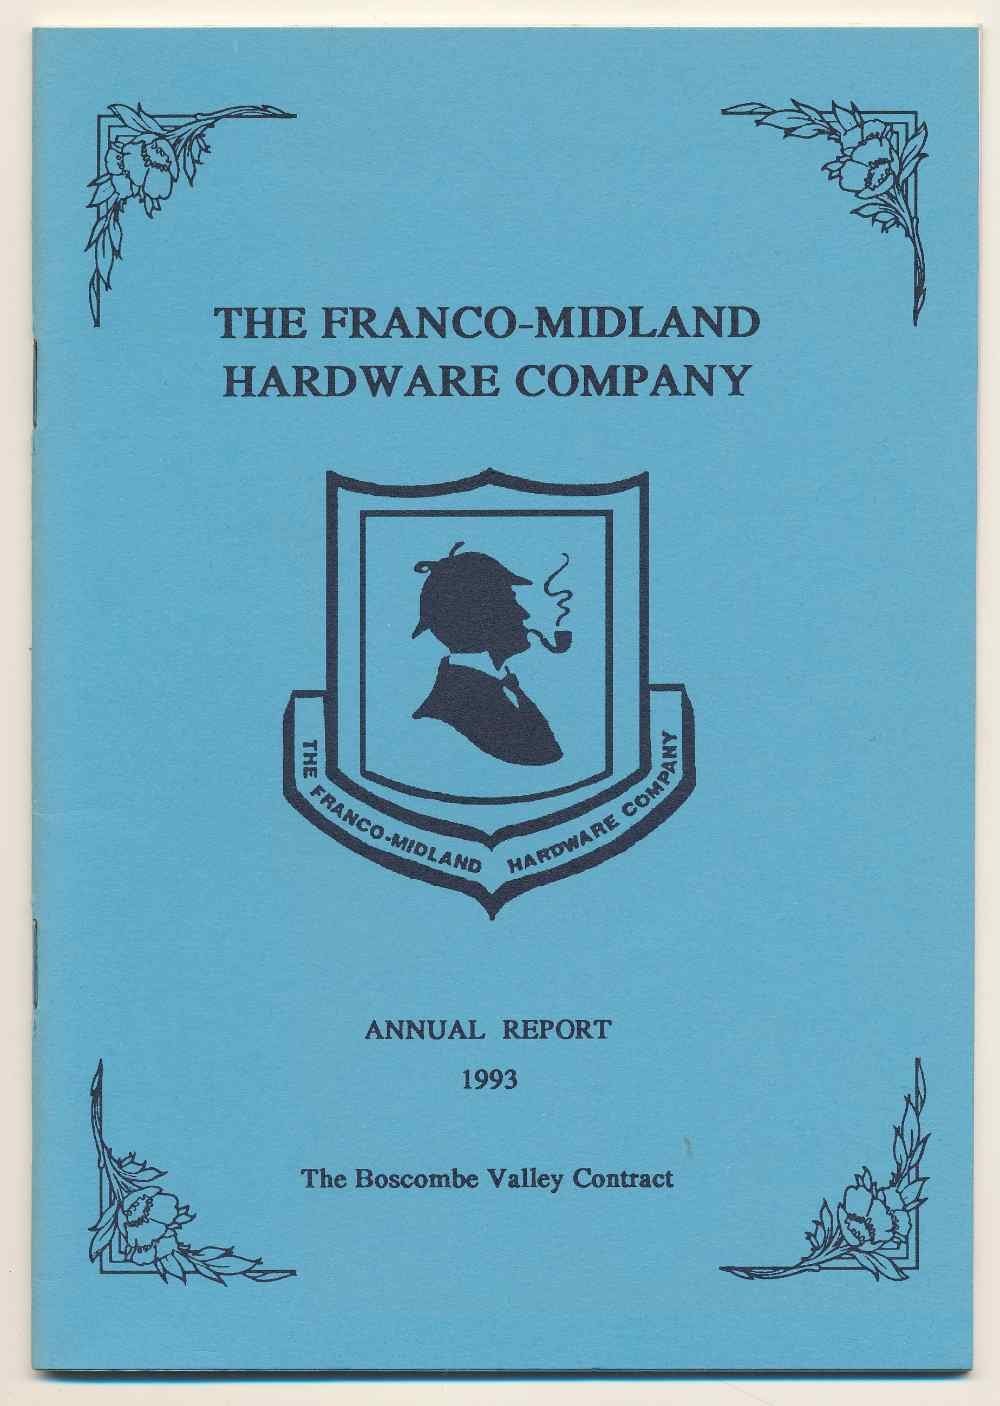 The Franco-Midland Hardware Company Annual Report